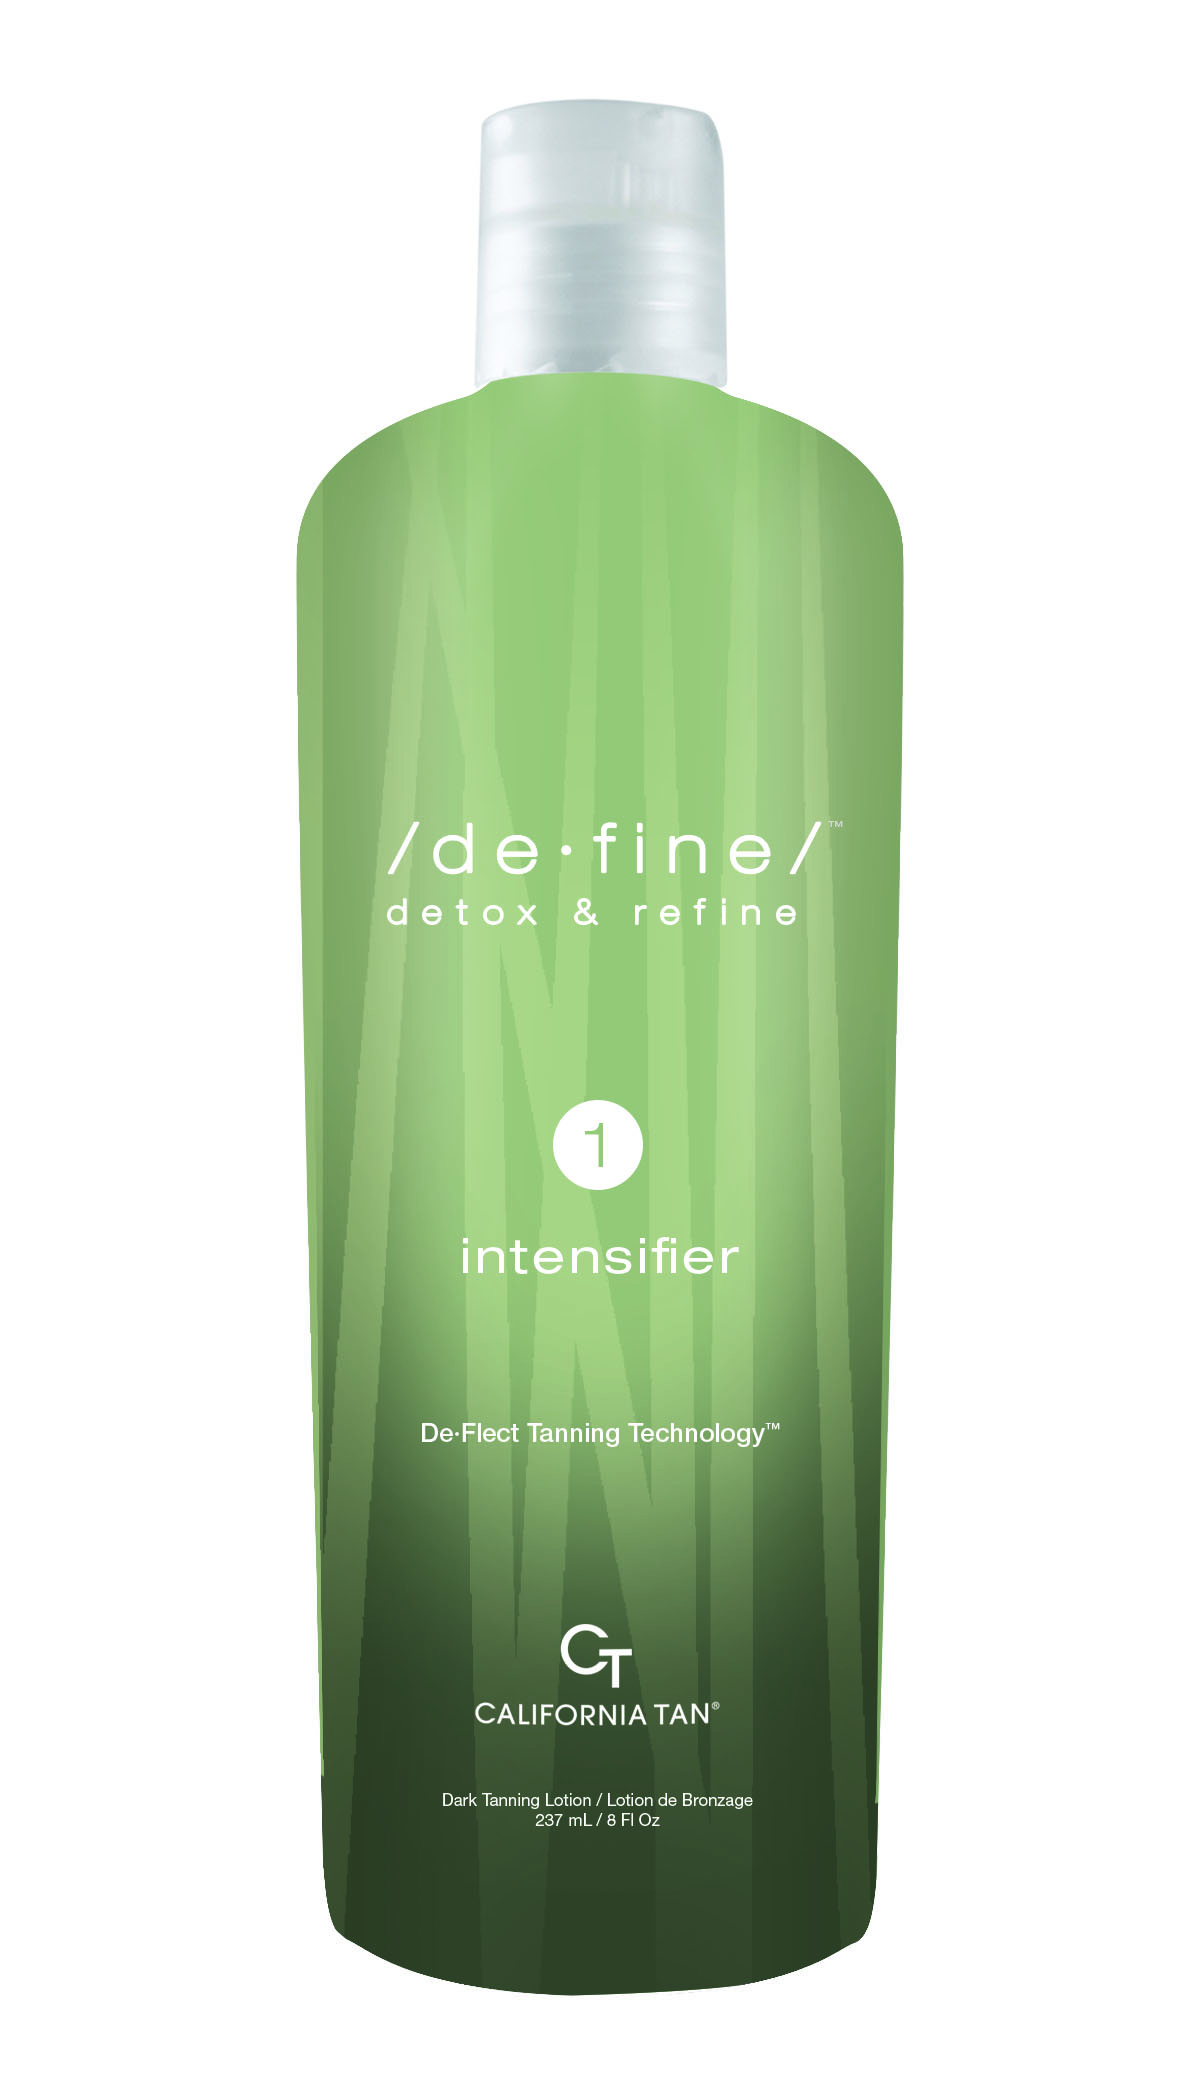 DeFine™ Intensifier